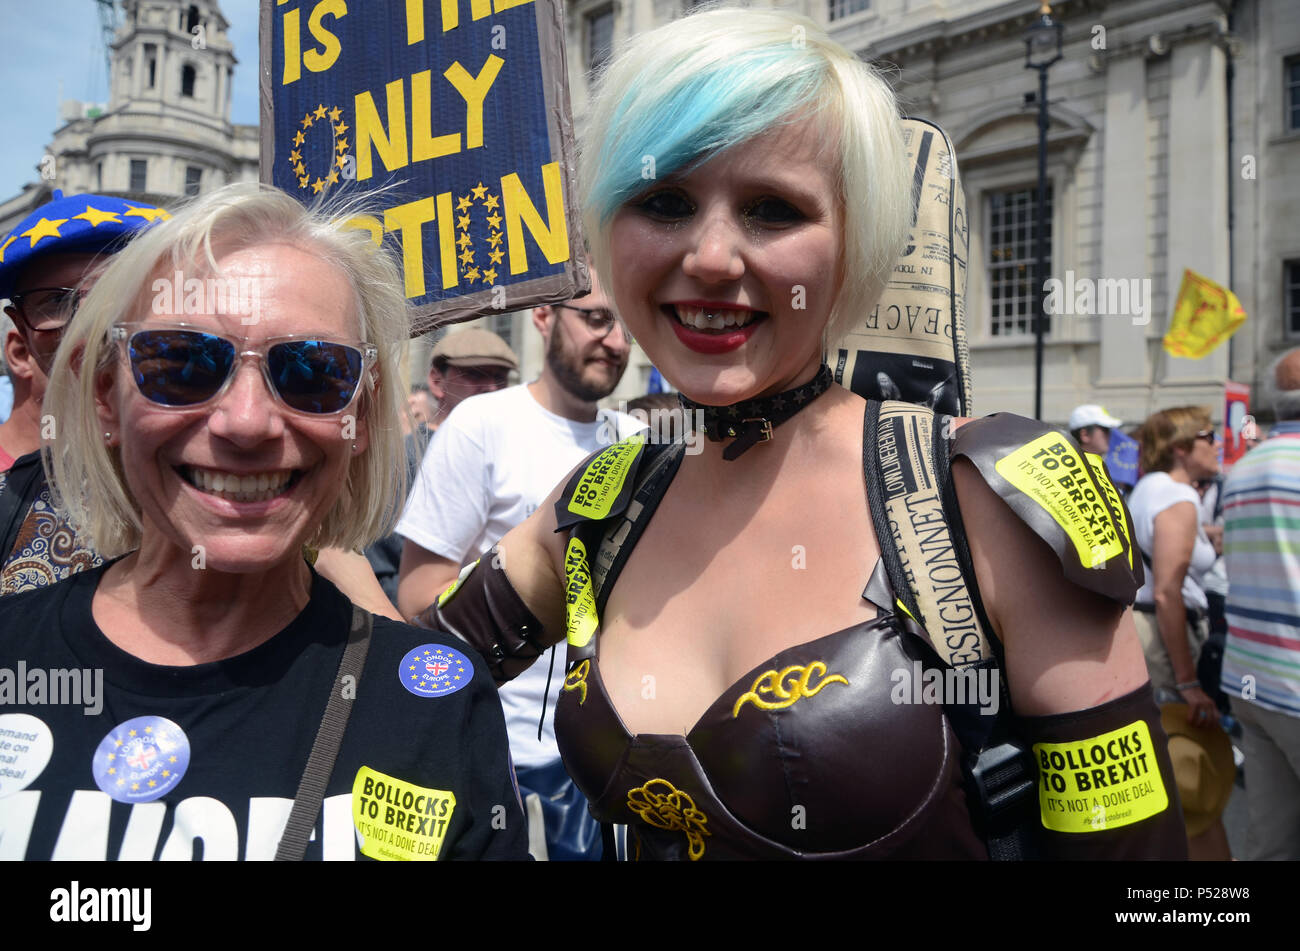 London, UK. 23rd June, 2018. Madeleina Kay EU Supergirl at People's Vote March in Parliament Square London Credit: Nadia Awad/Alamy Live News - Stock Image